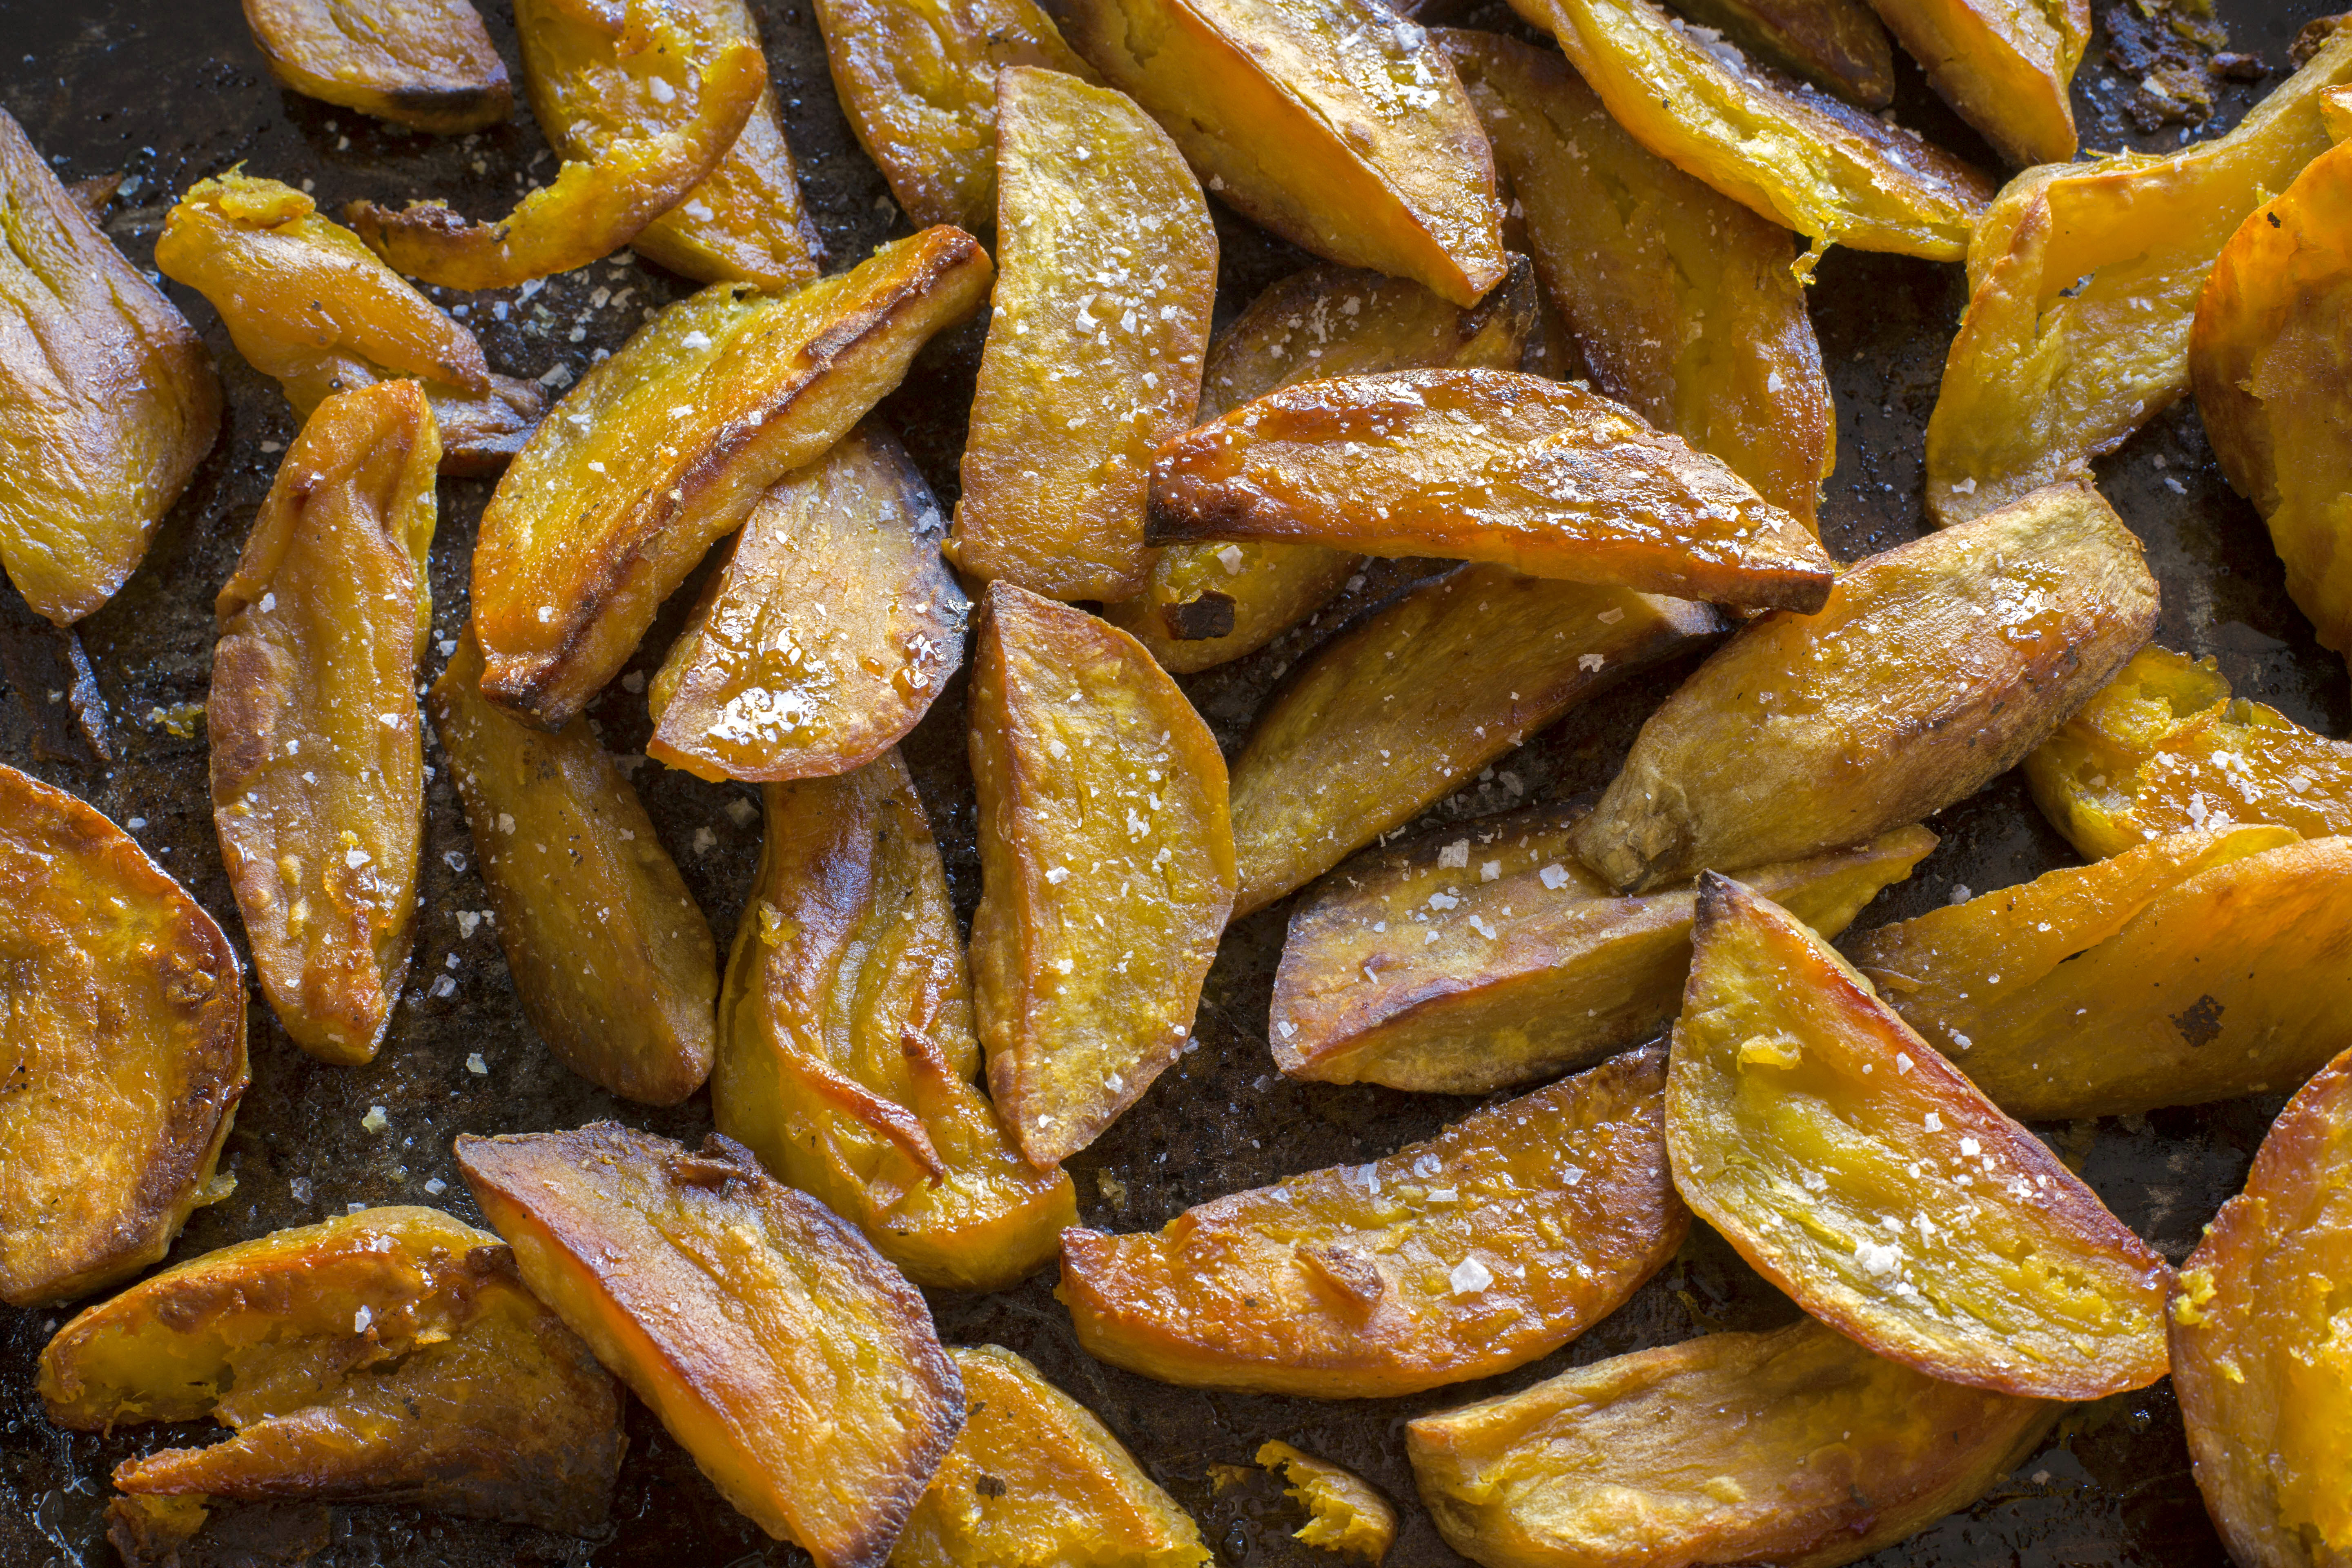 ... .co.nz Crunchy maple baked kumara chips - ChelseaWinter.co.nz